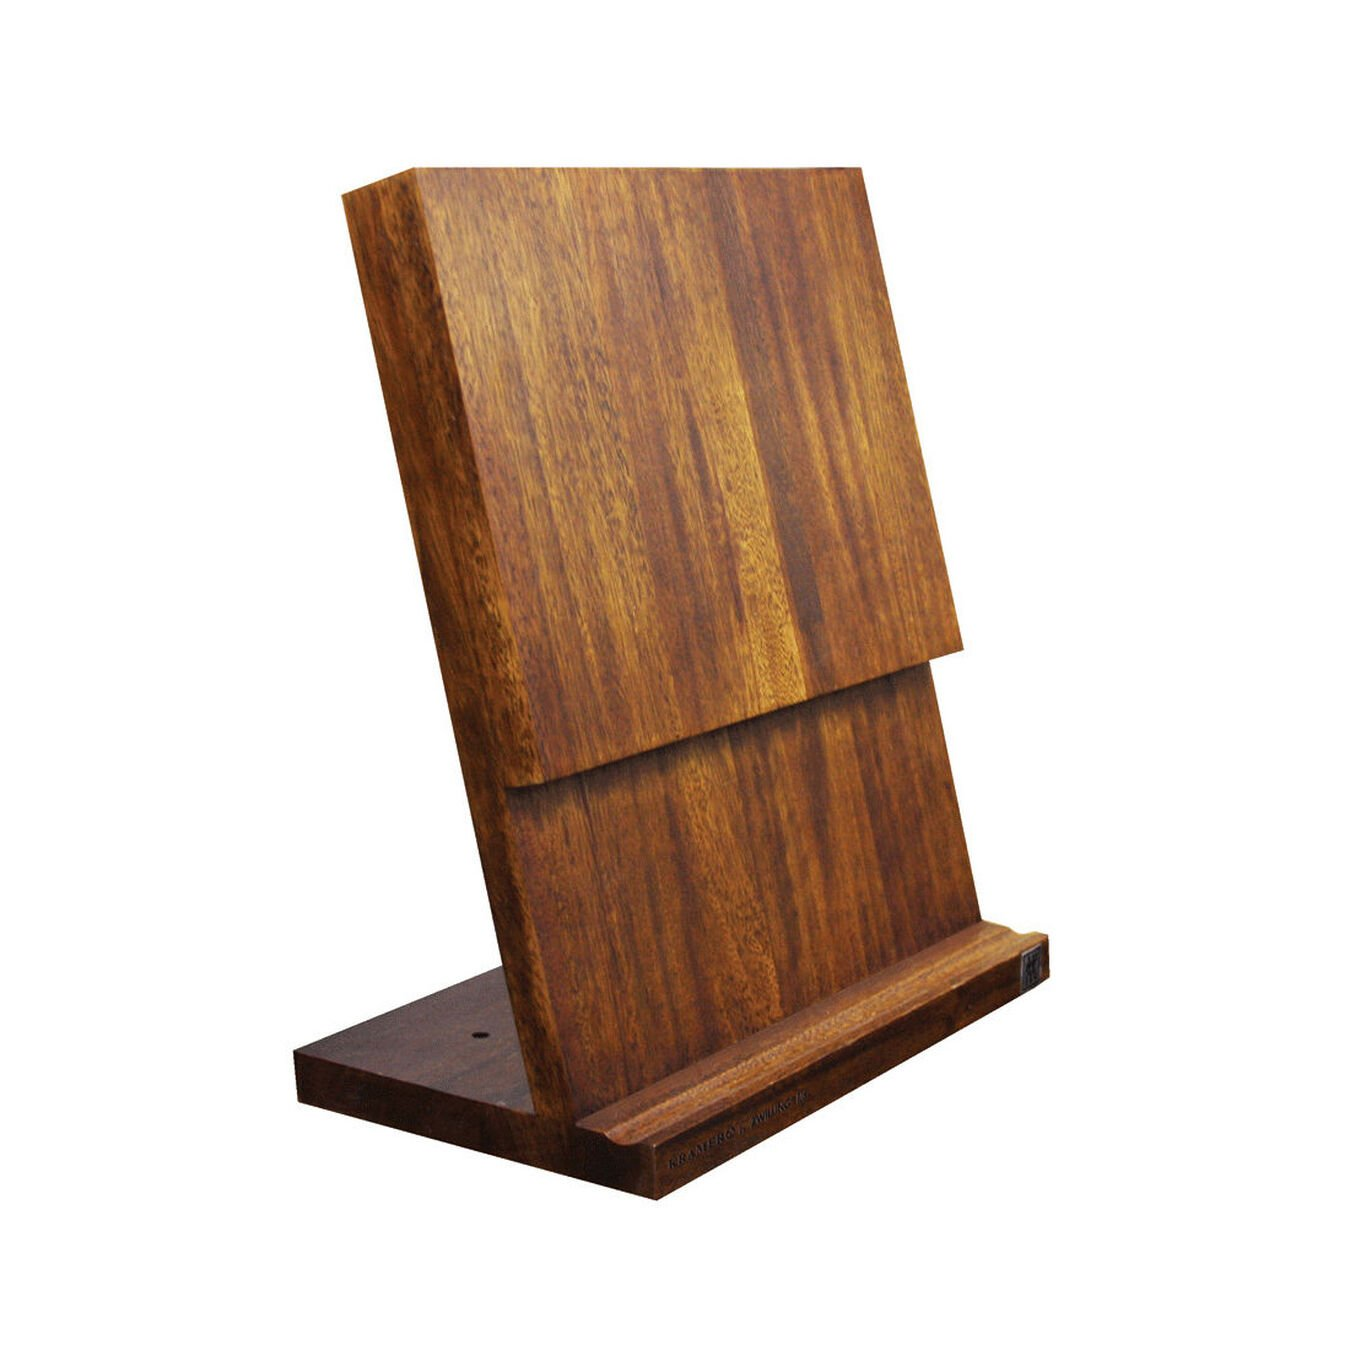 10-slot Add-on Block for Upright Easel Knife Block (for item# 34900-100),,large 1